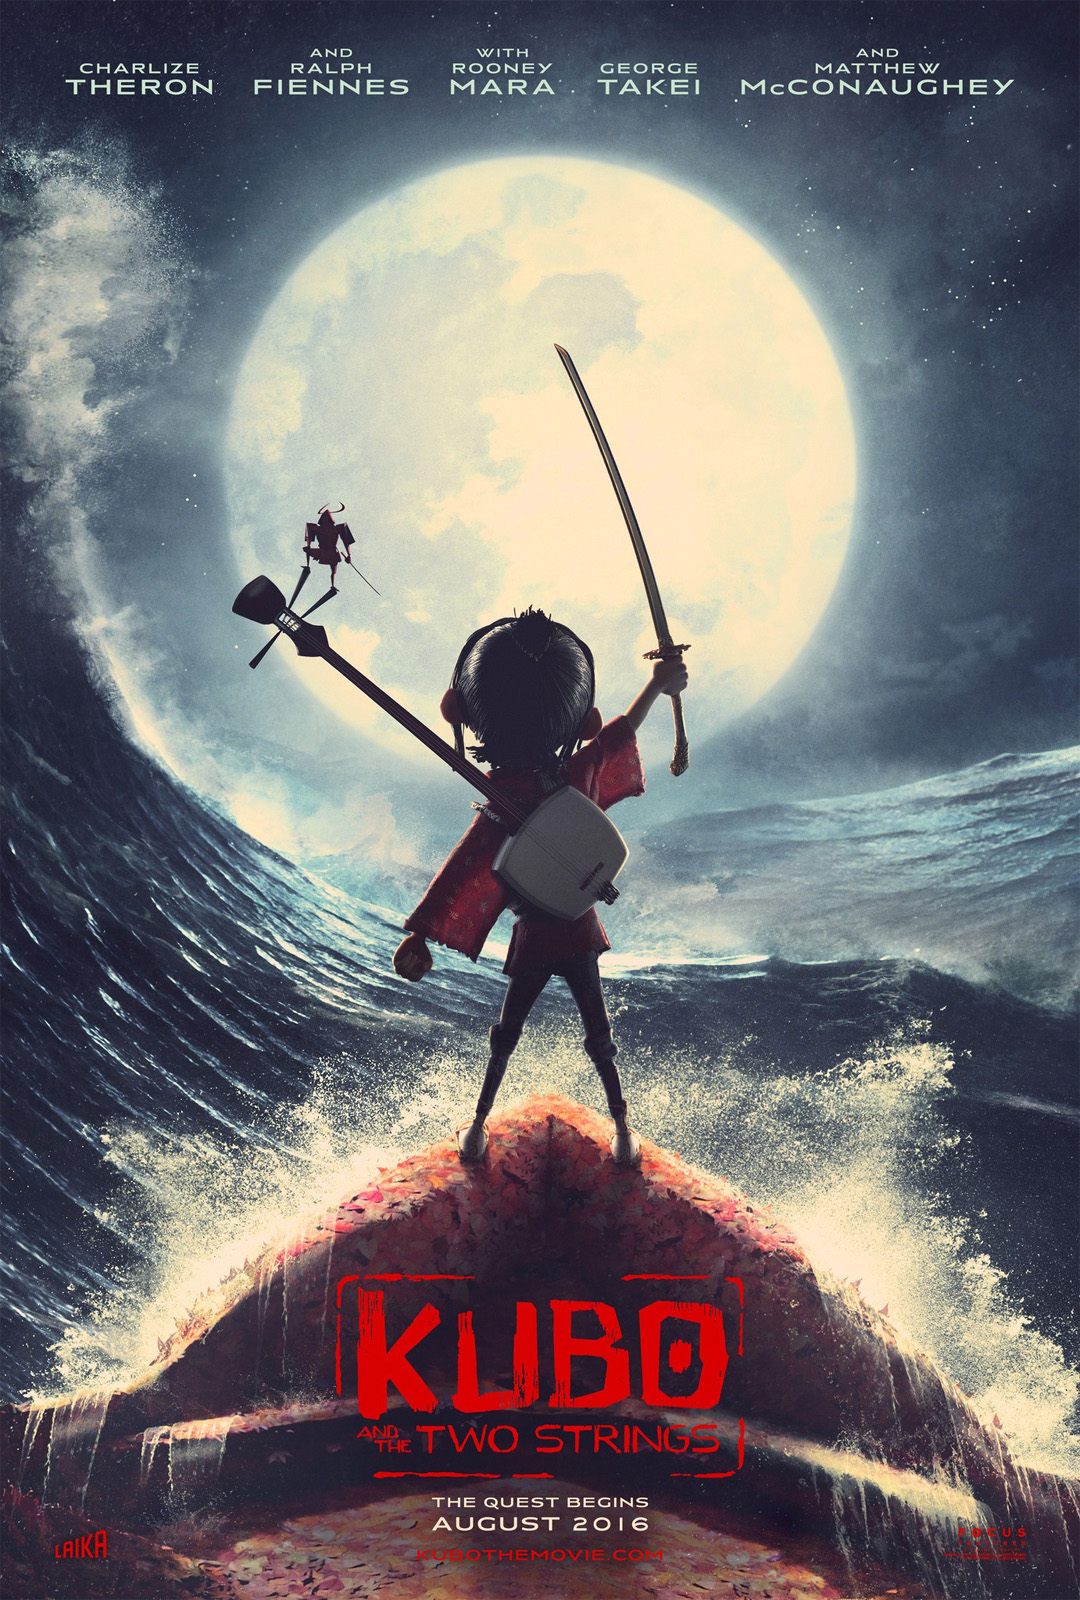 Kubo And The Two Strings-28Janeiro2016 (1)